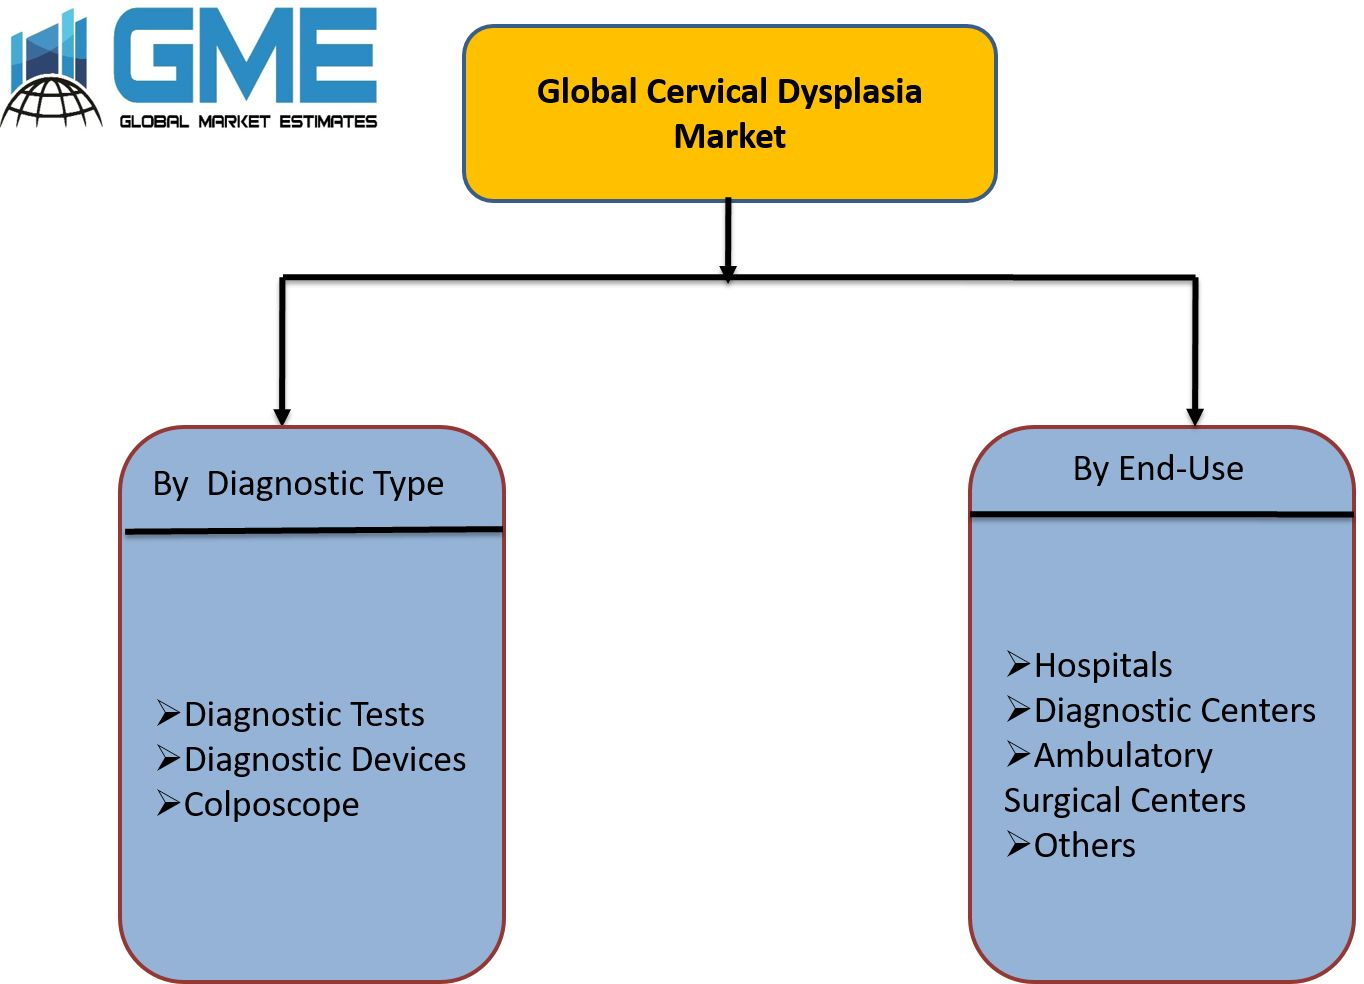 Global Cervical Dysplasia Market Segmentation